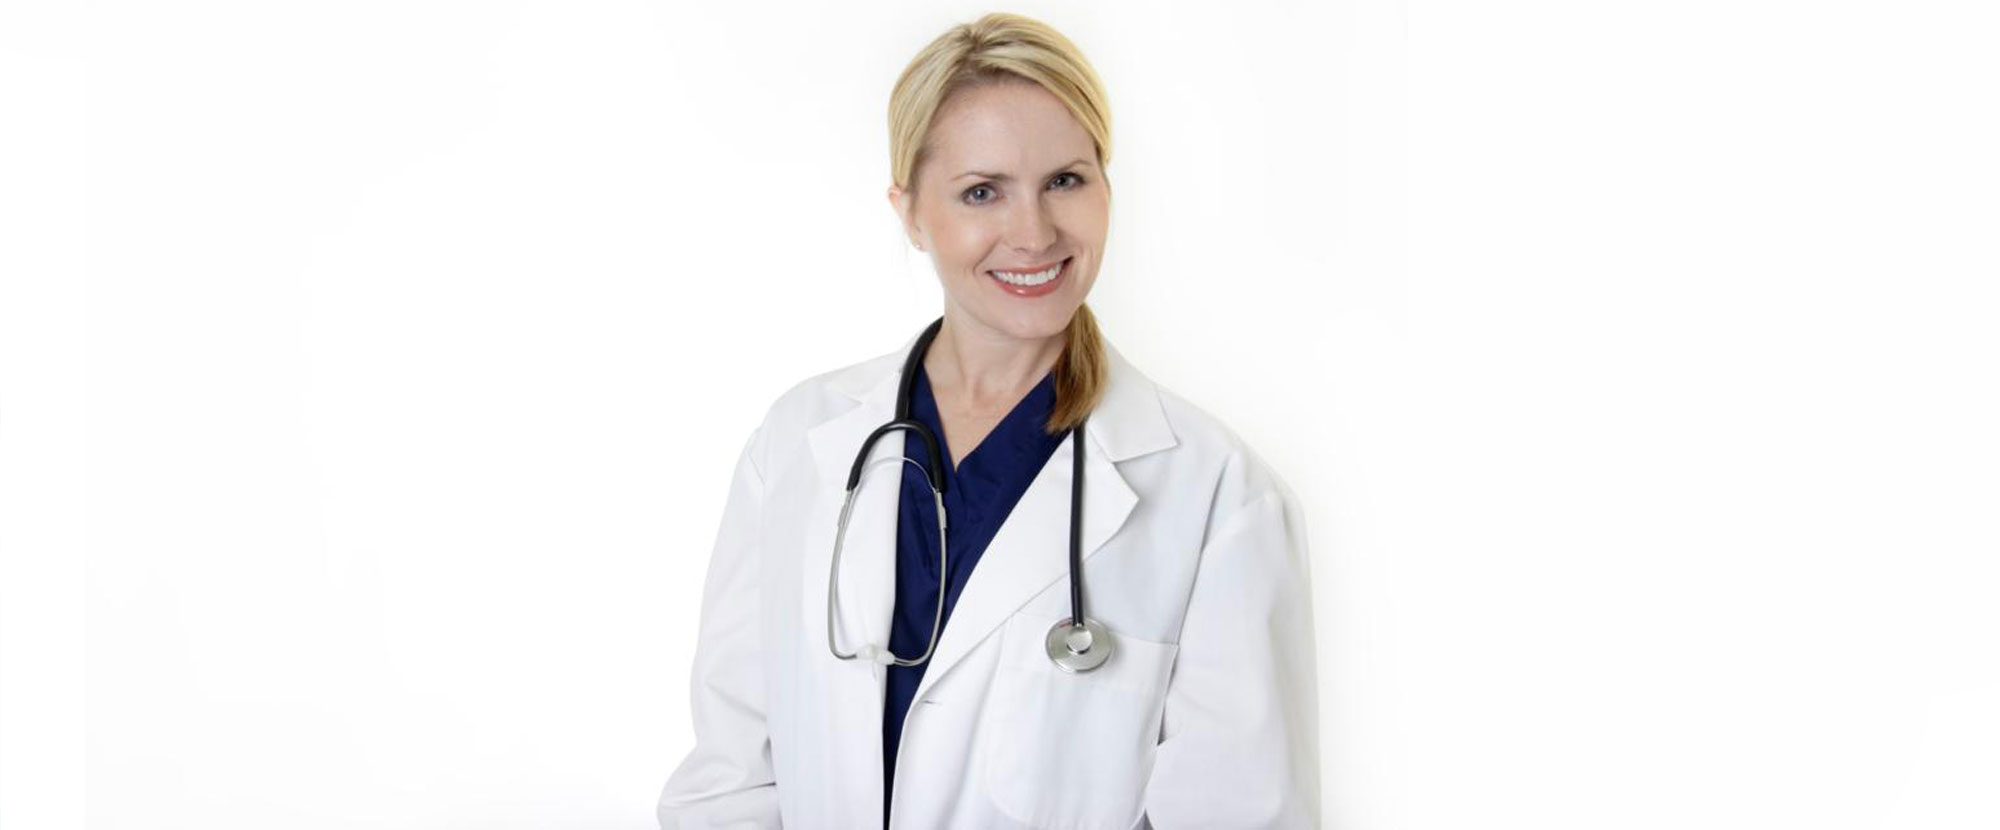 A woman wearing a doctor's lab coat and stethoscope